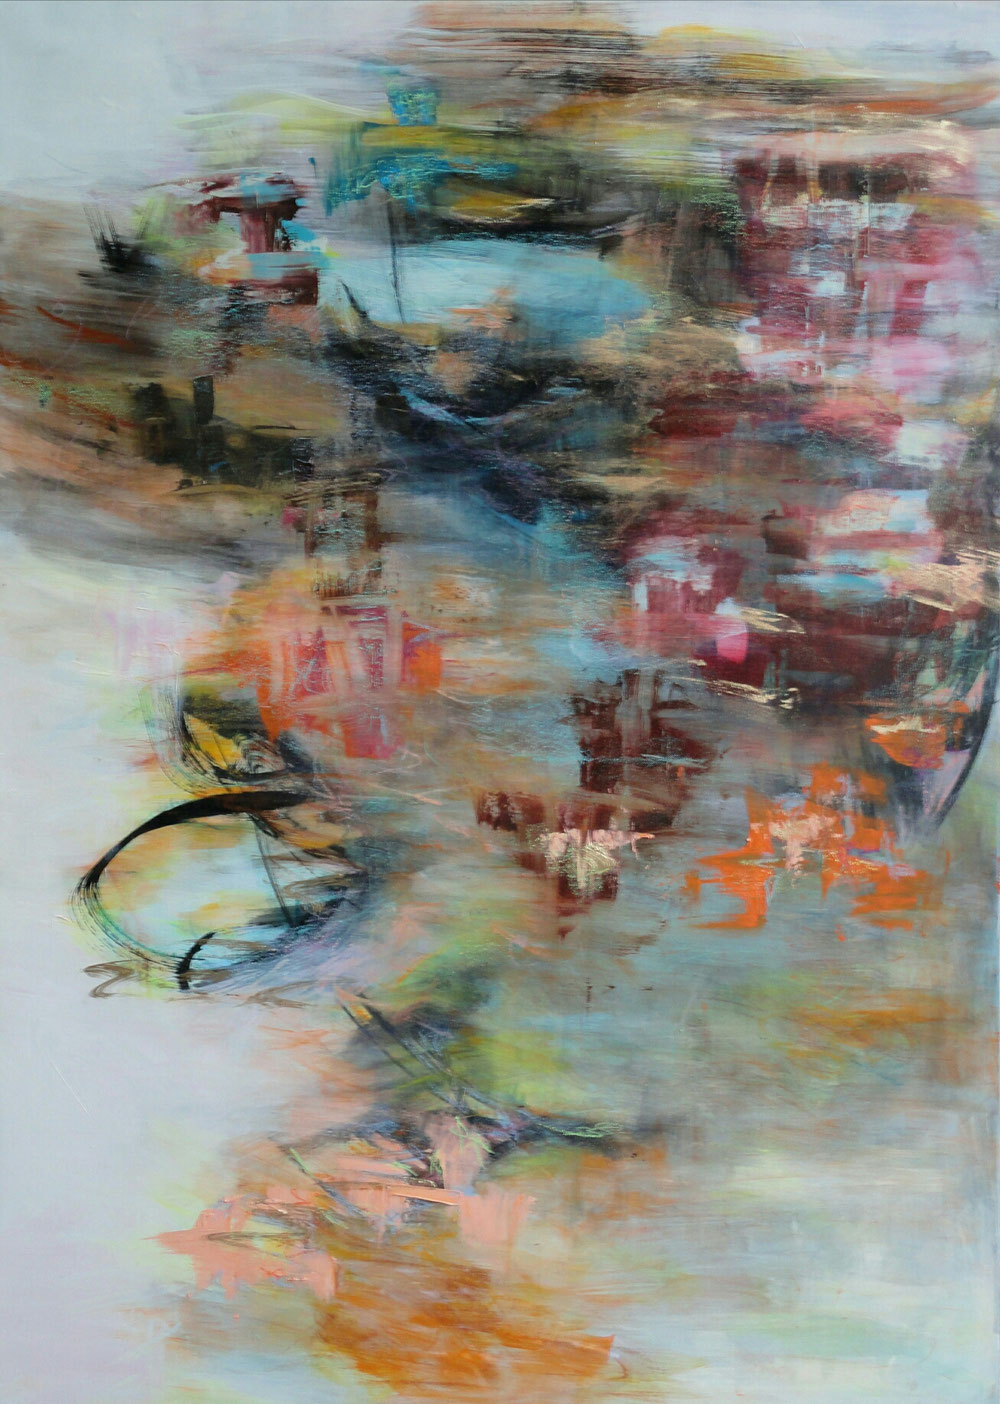 Reflections in the harbour, 105 x 75, mixed media on canvas